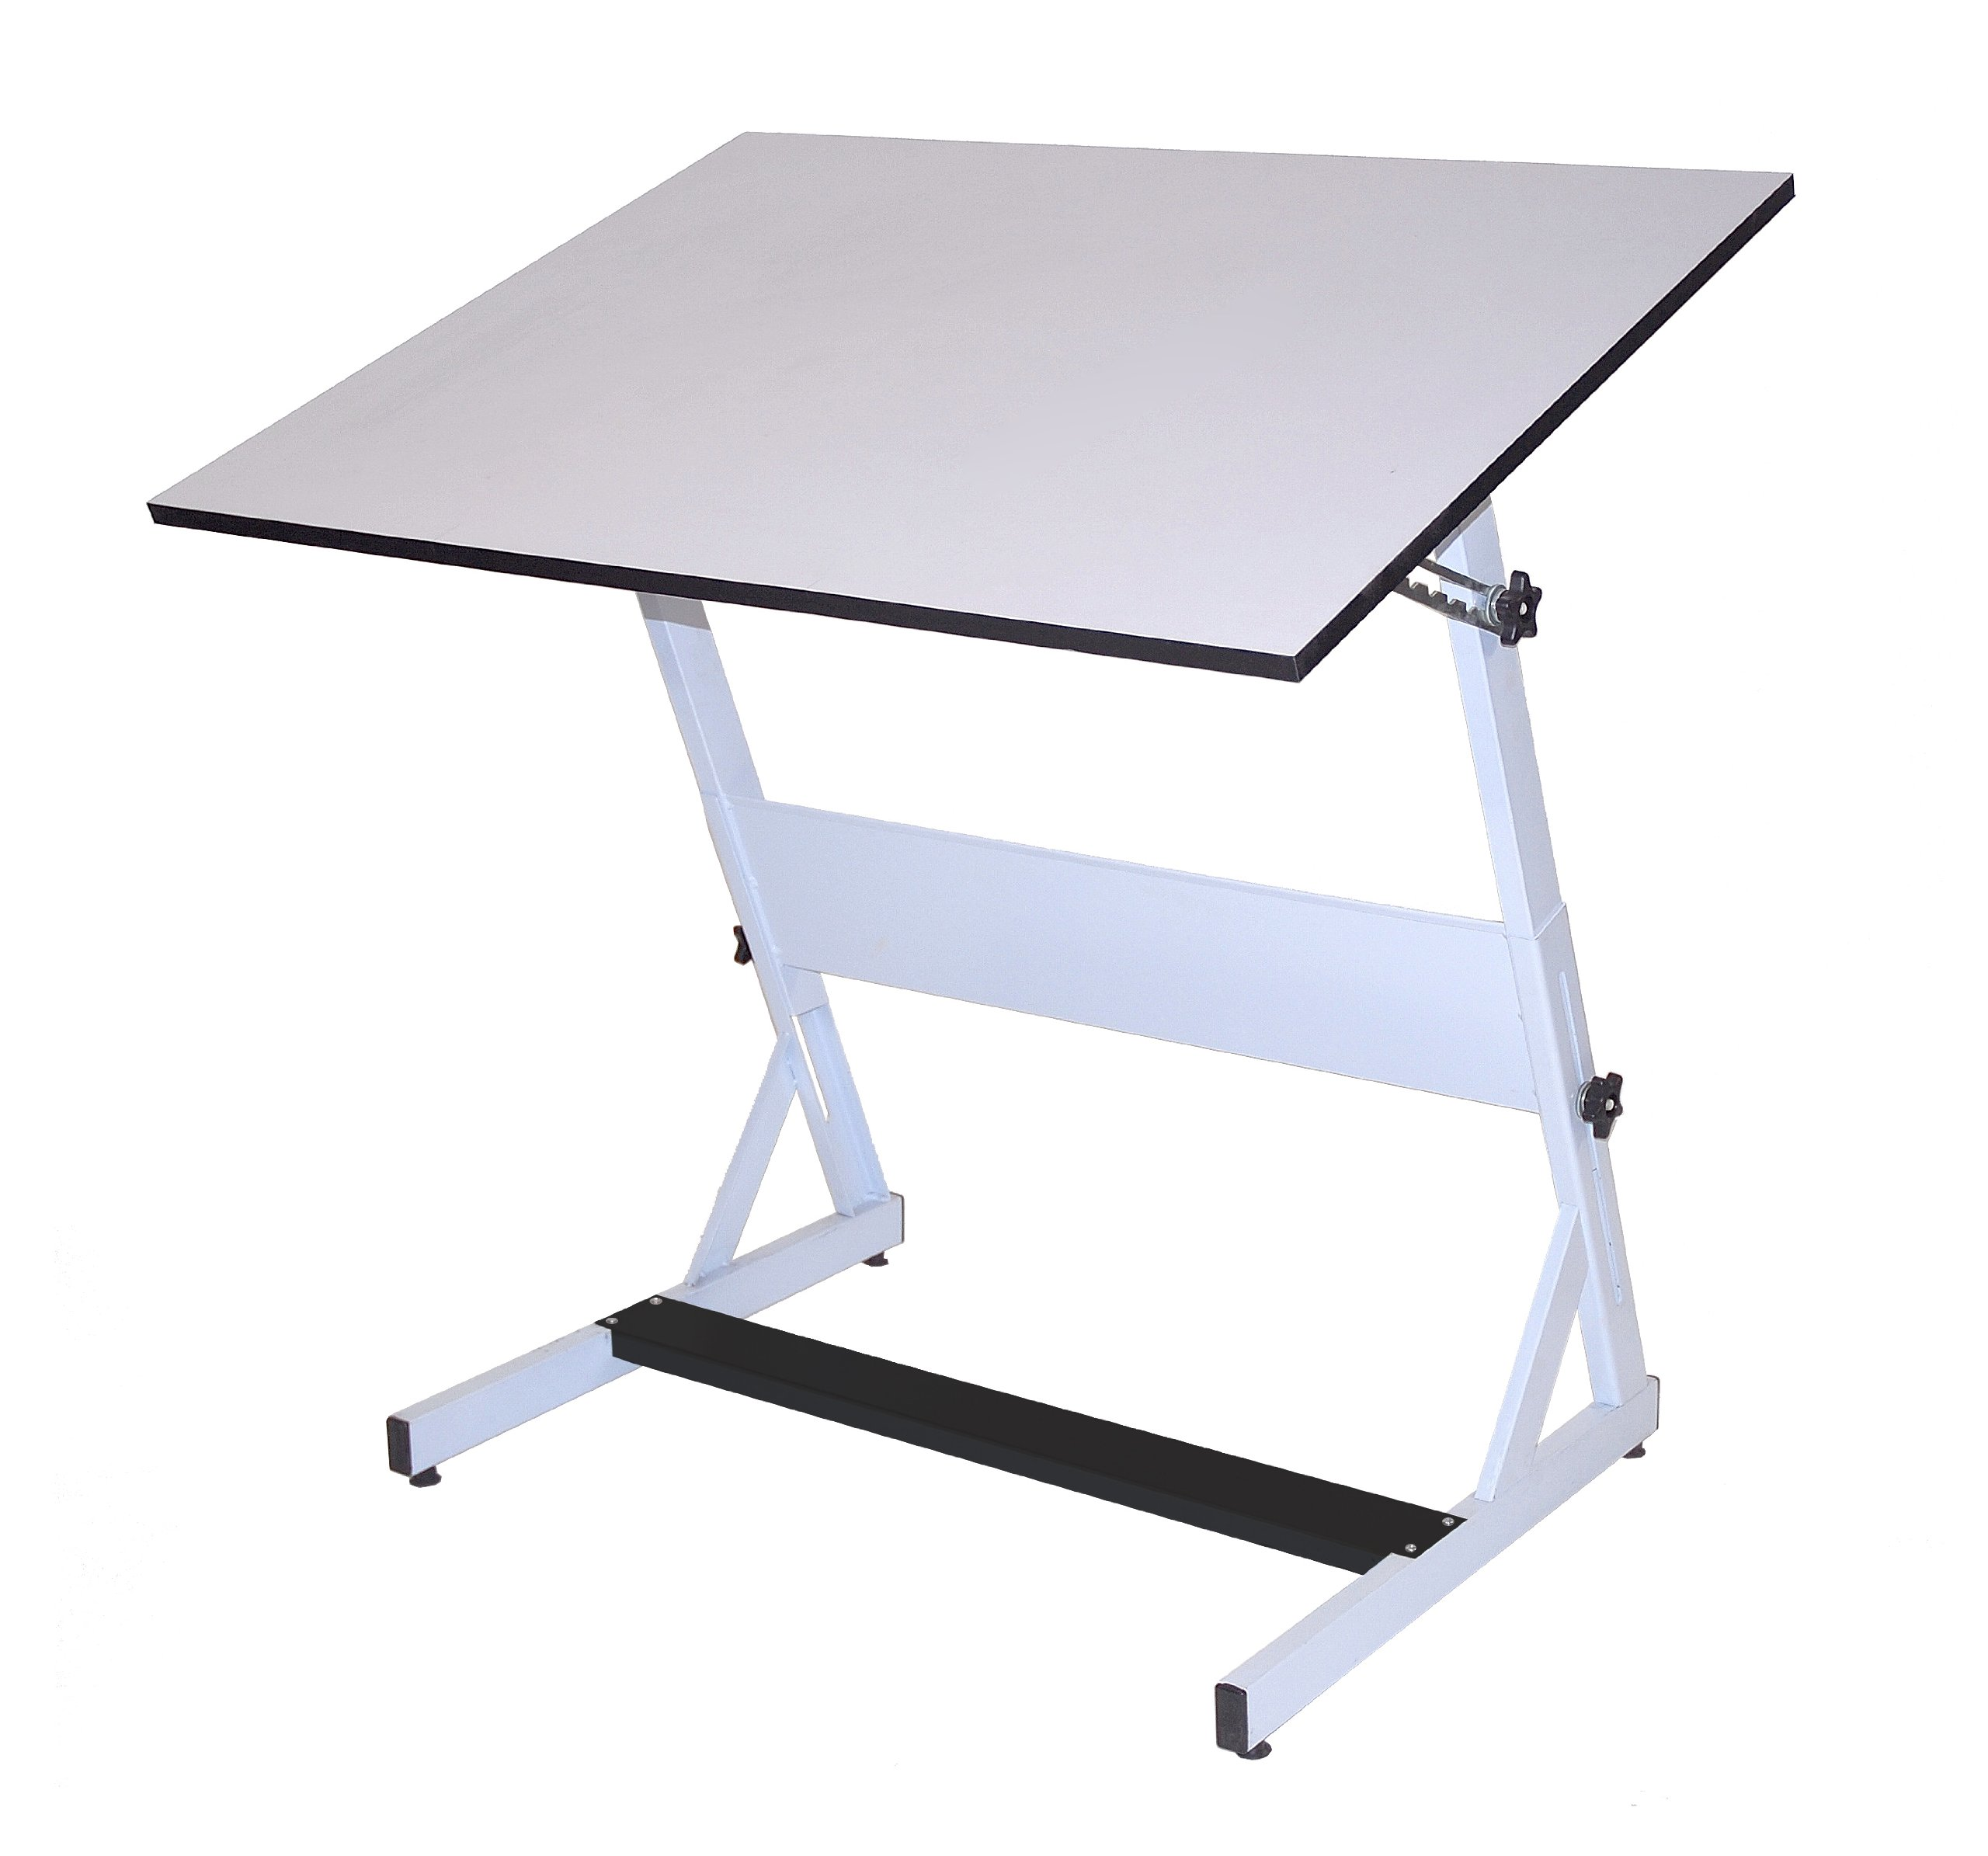 Martin MXZ Drawing and Drafting White Table, 30'' D x 42'' W Tiltable Top, 1 Each , by Martin